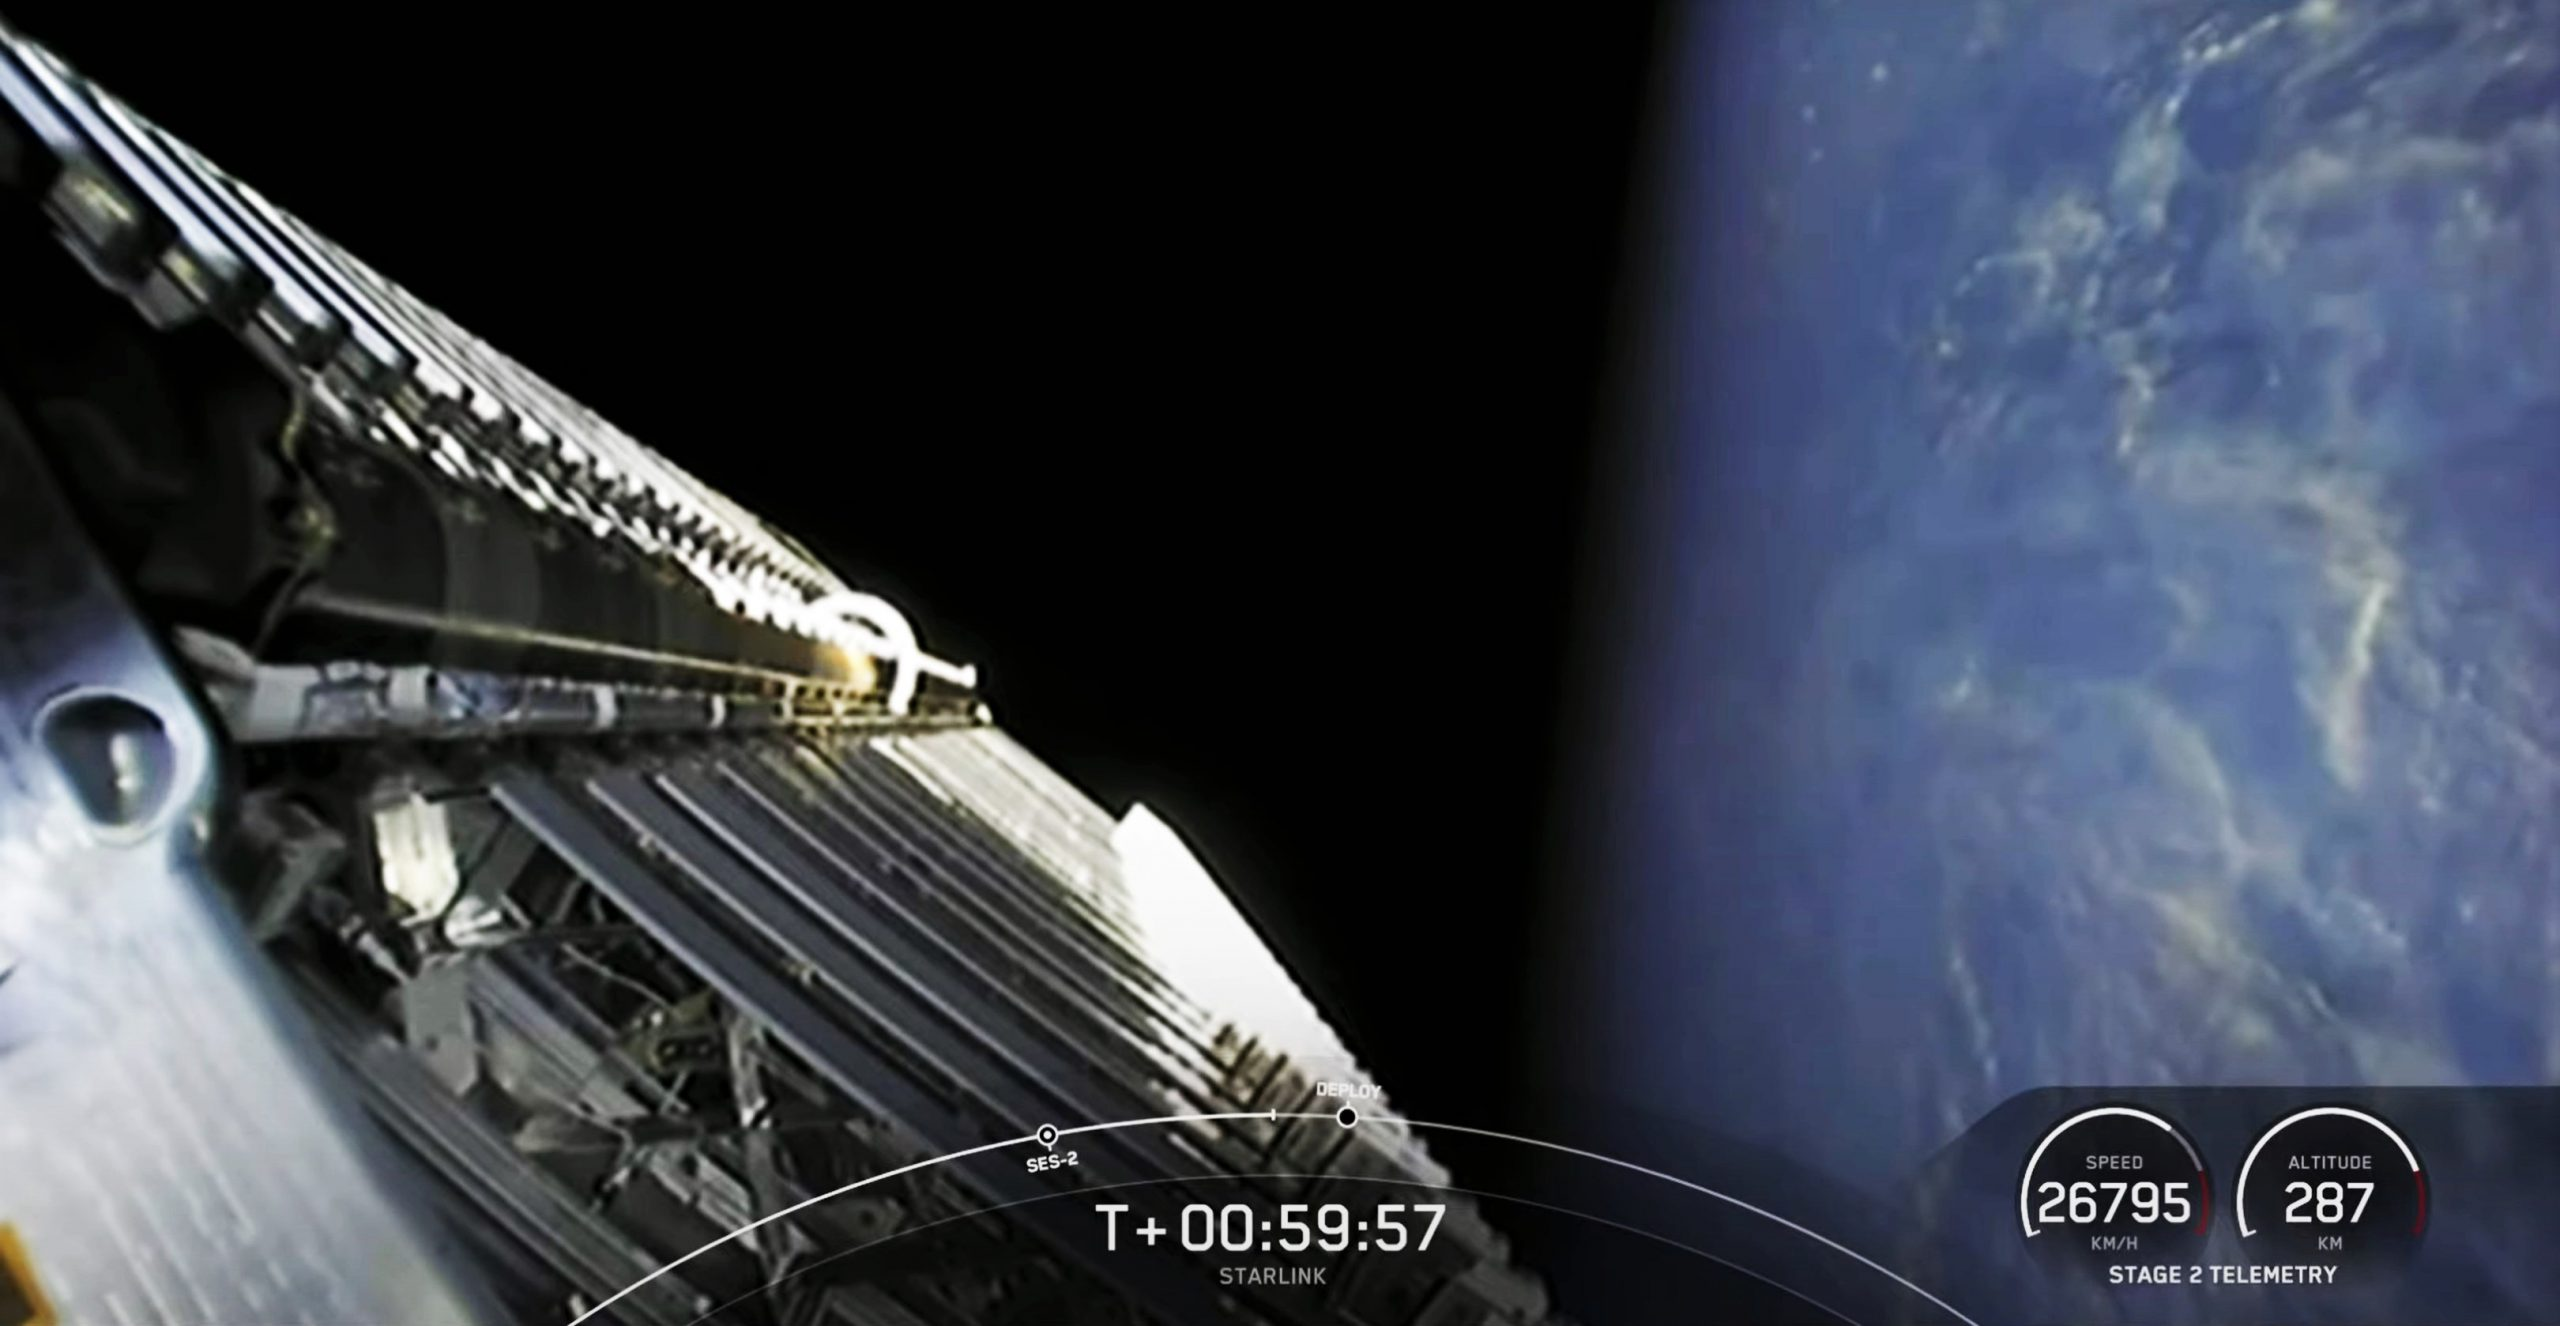 Starlink-20 Falcon 9 B1058 LC-40 031121 webcast (SpaceX) deploy 2